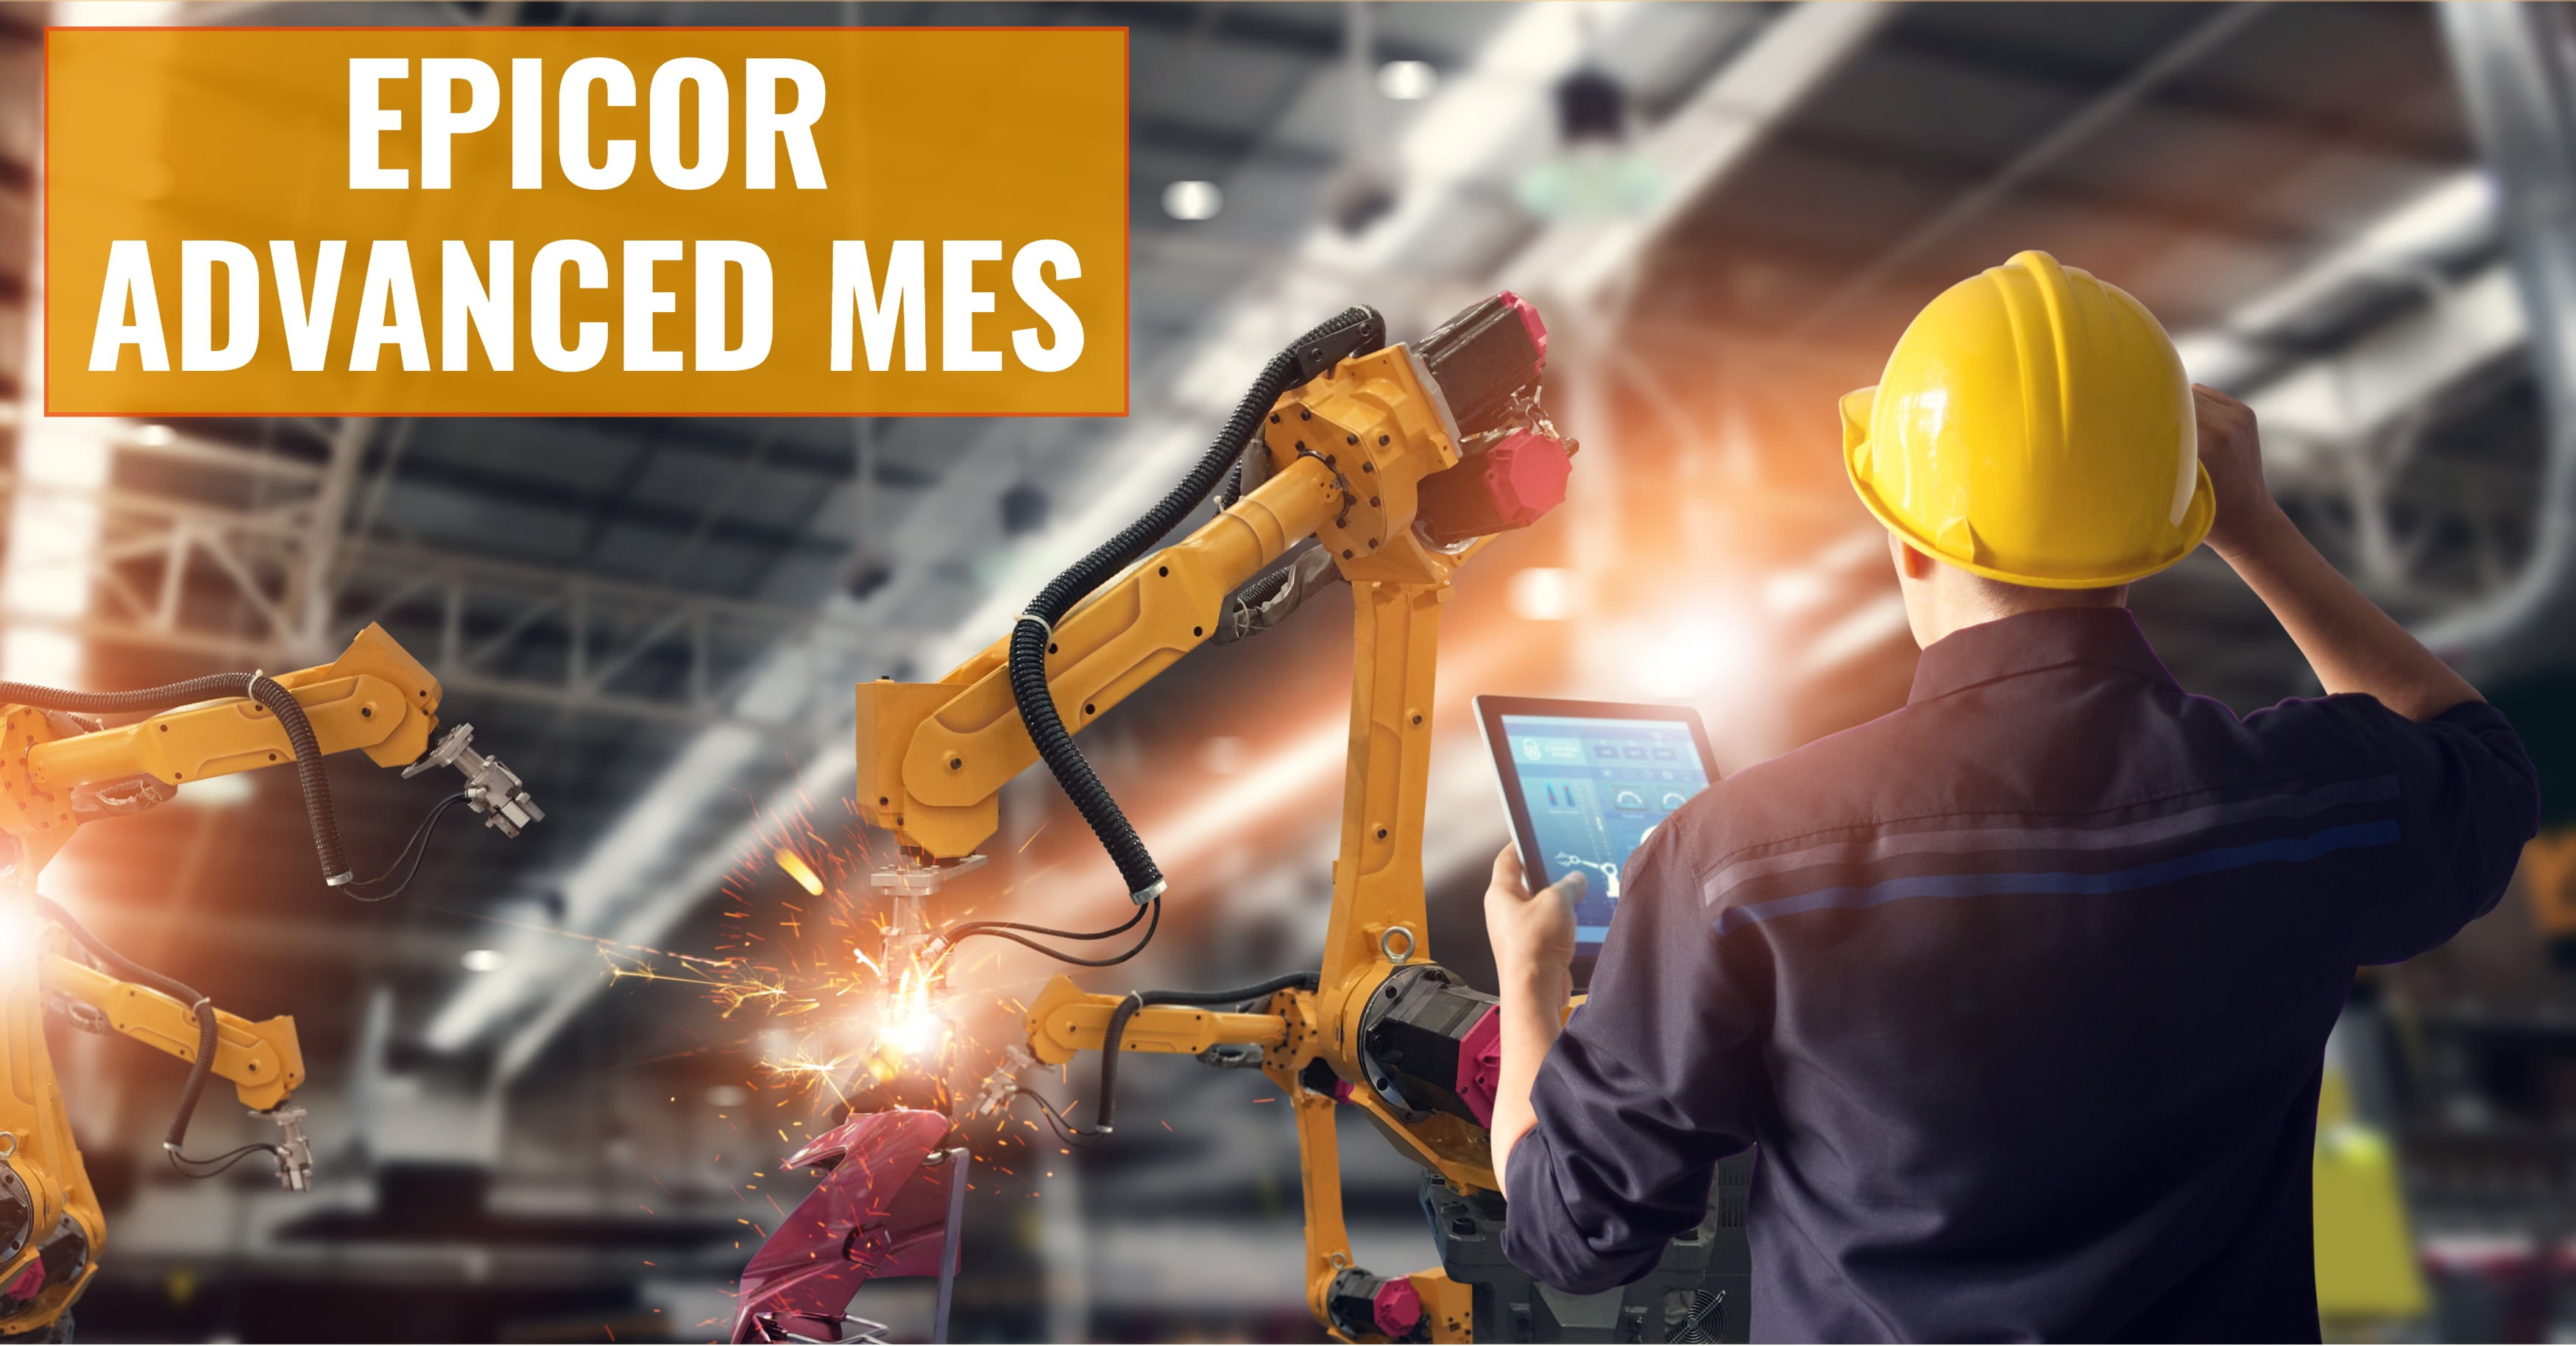 Why Do Manufacturers Need Epicor Advanced MES?